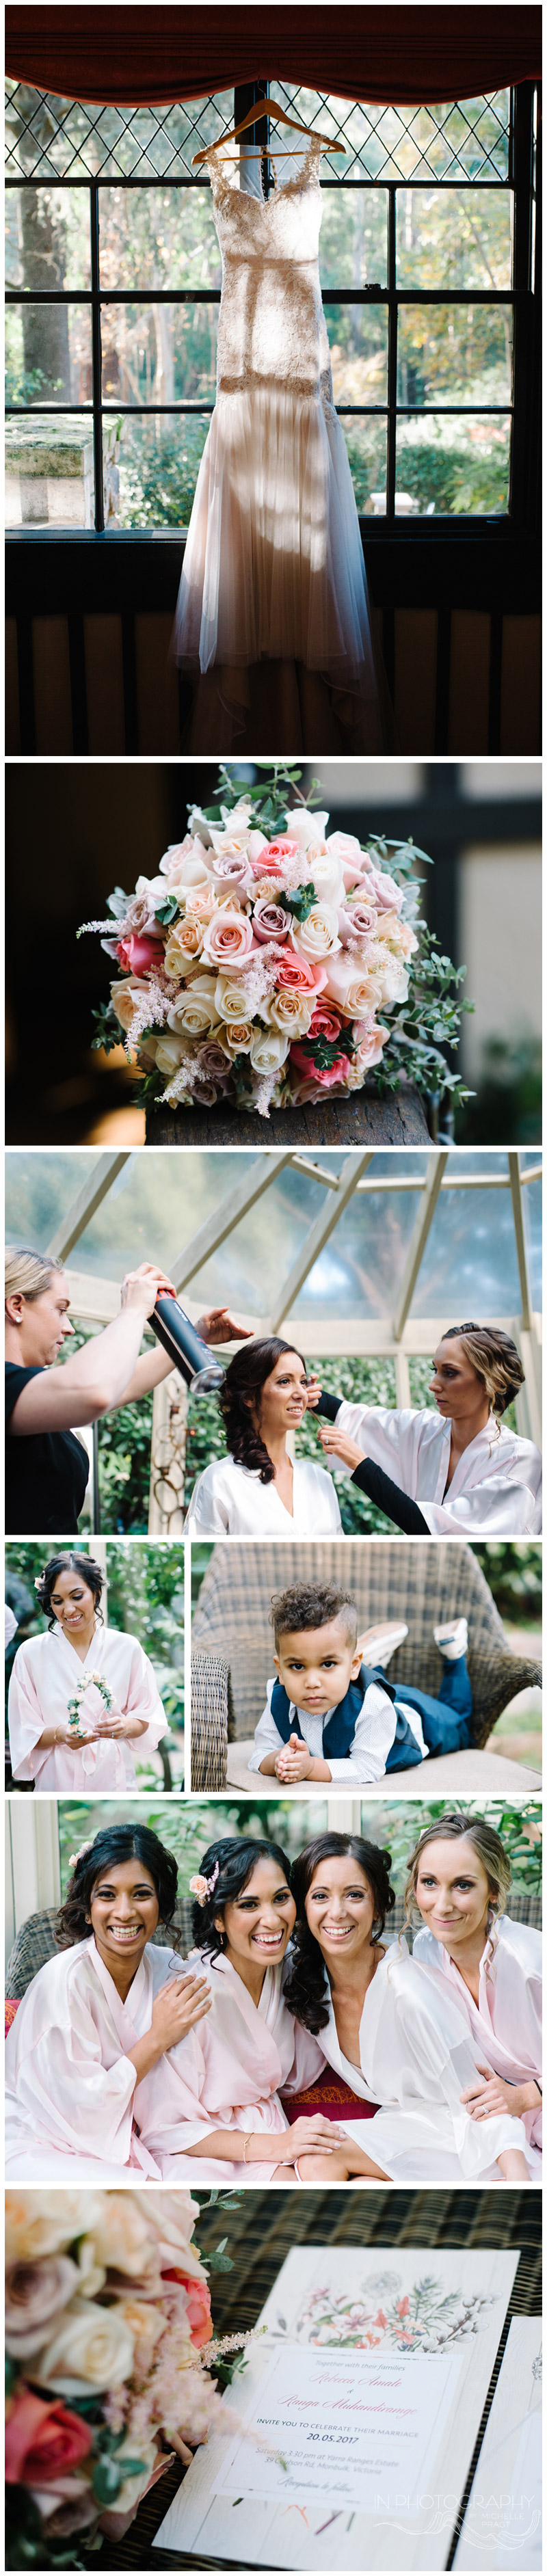 Yarra Ranges wedding photography